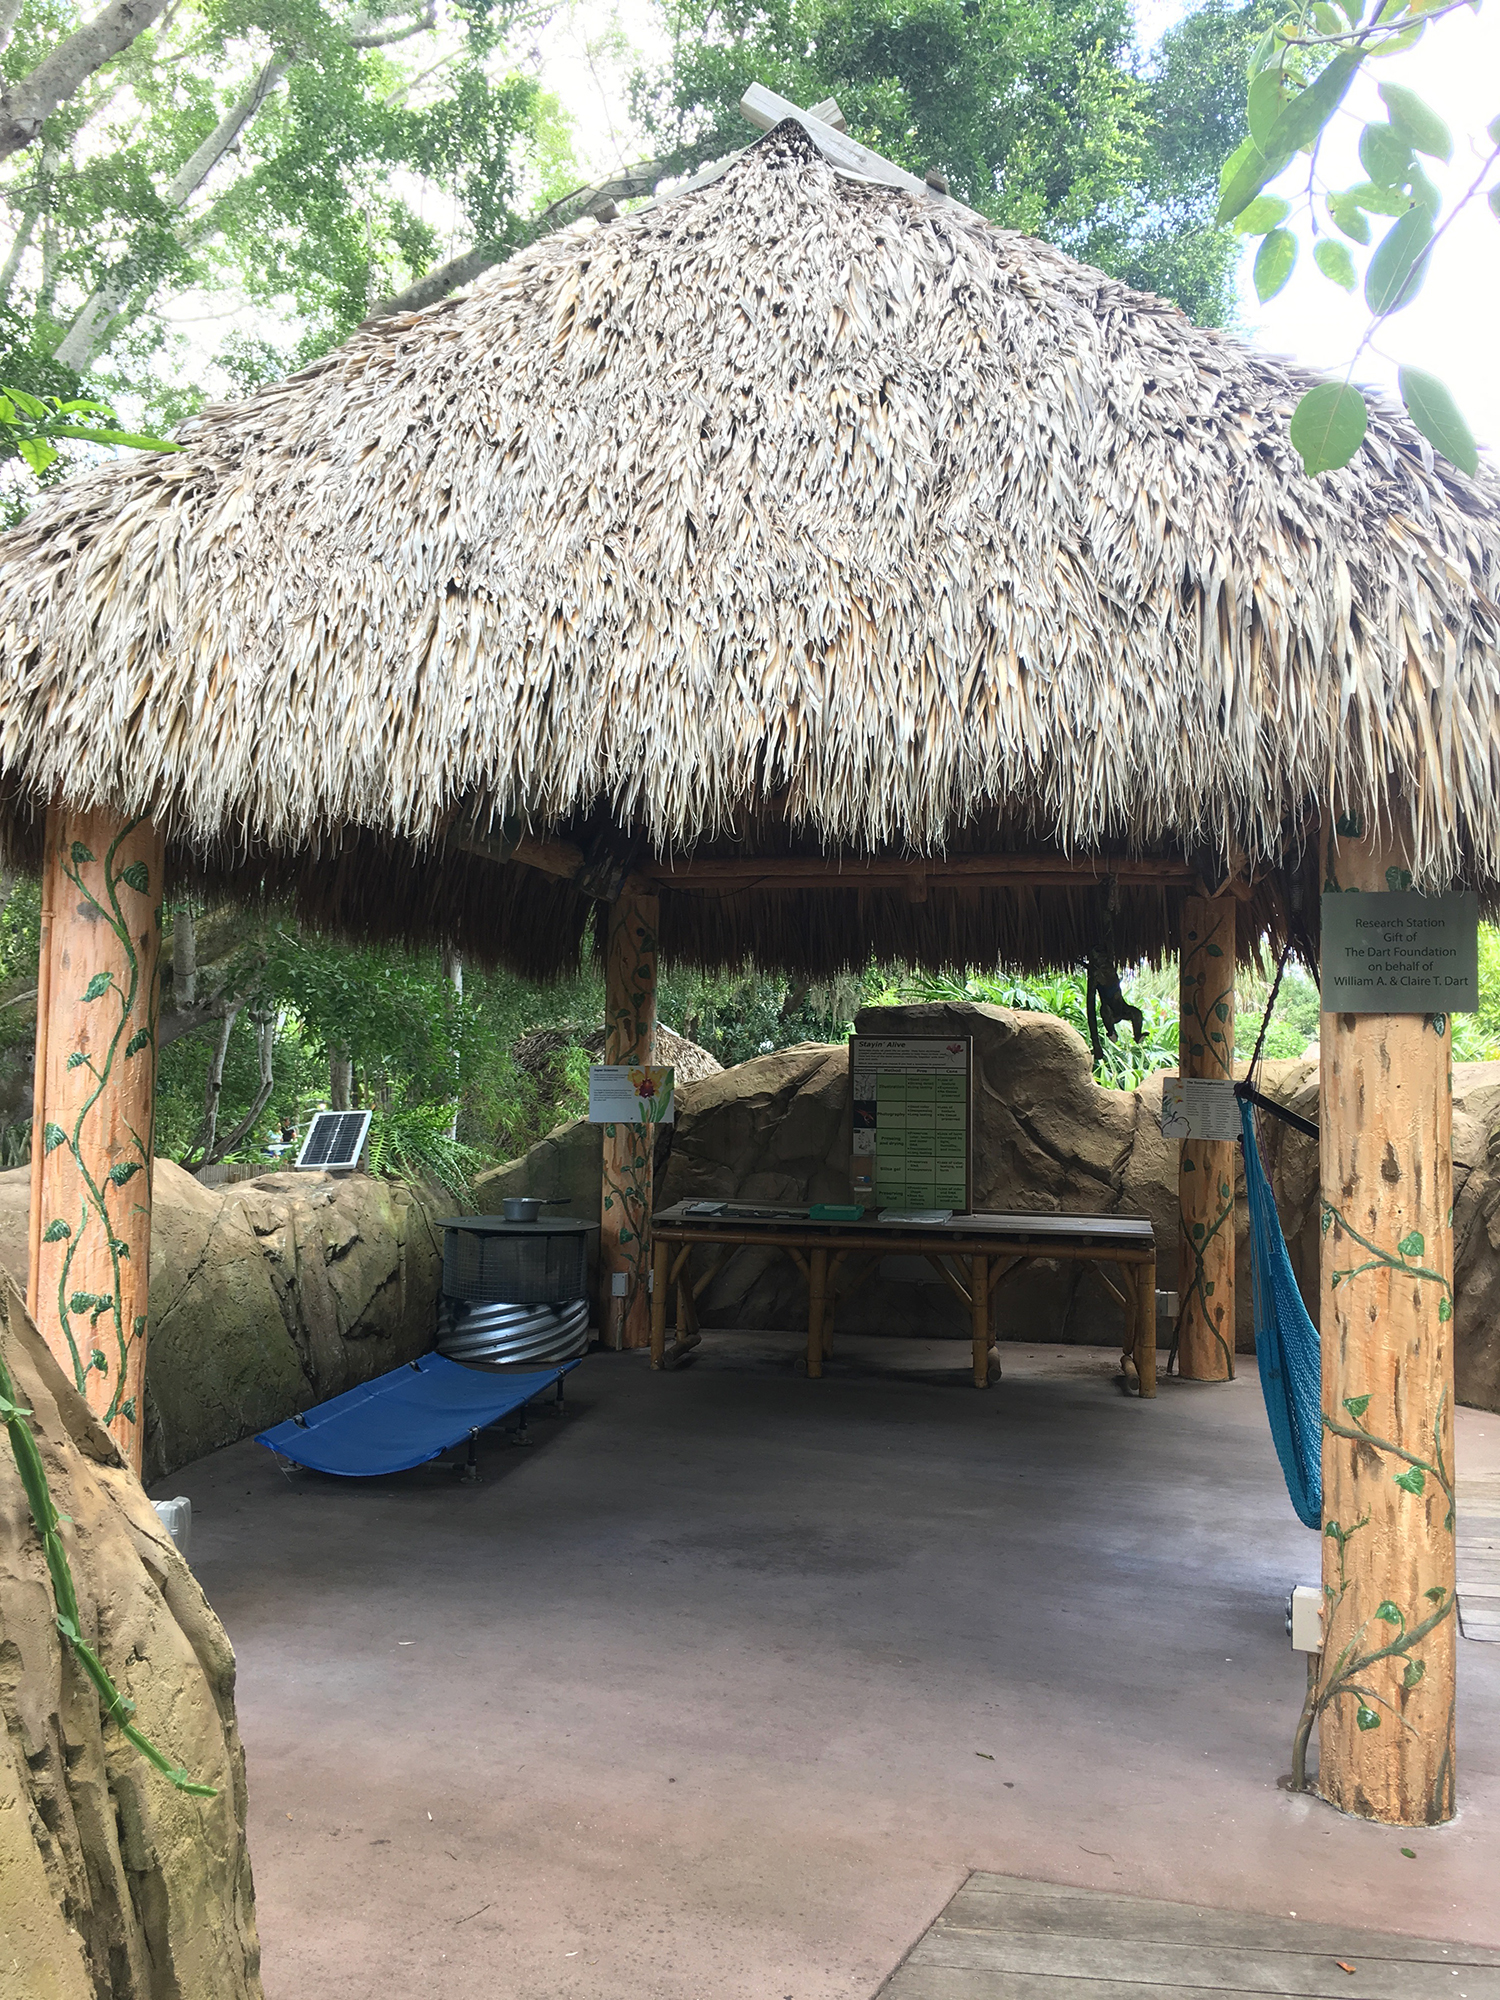 4 Reasons to Visit Marie Selby Gardens - Sarasota Attractions - Bianca Dottin